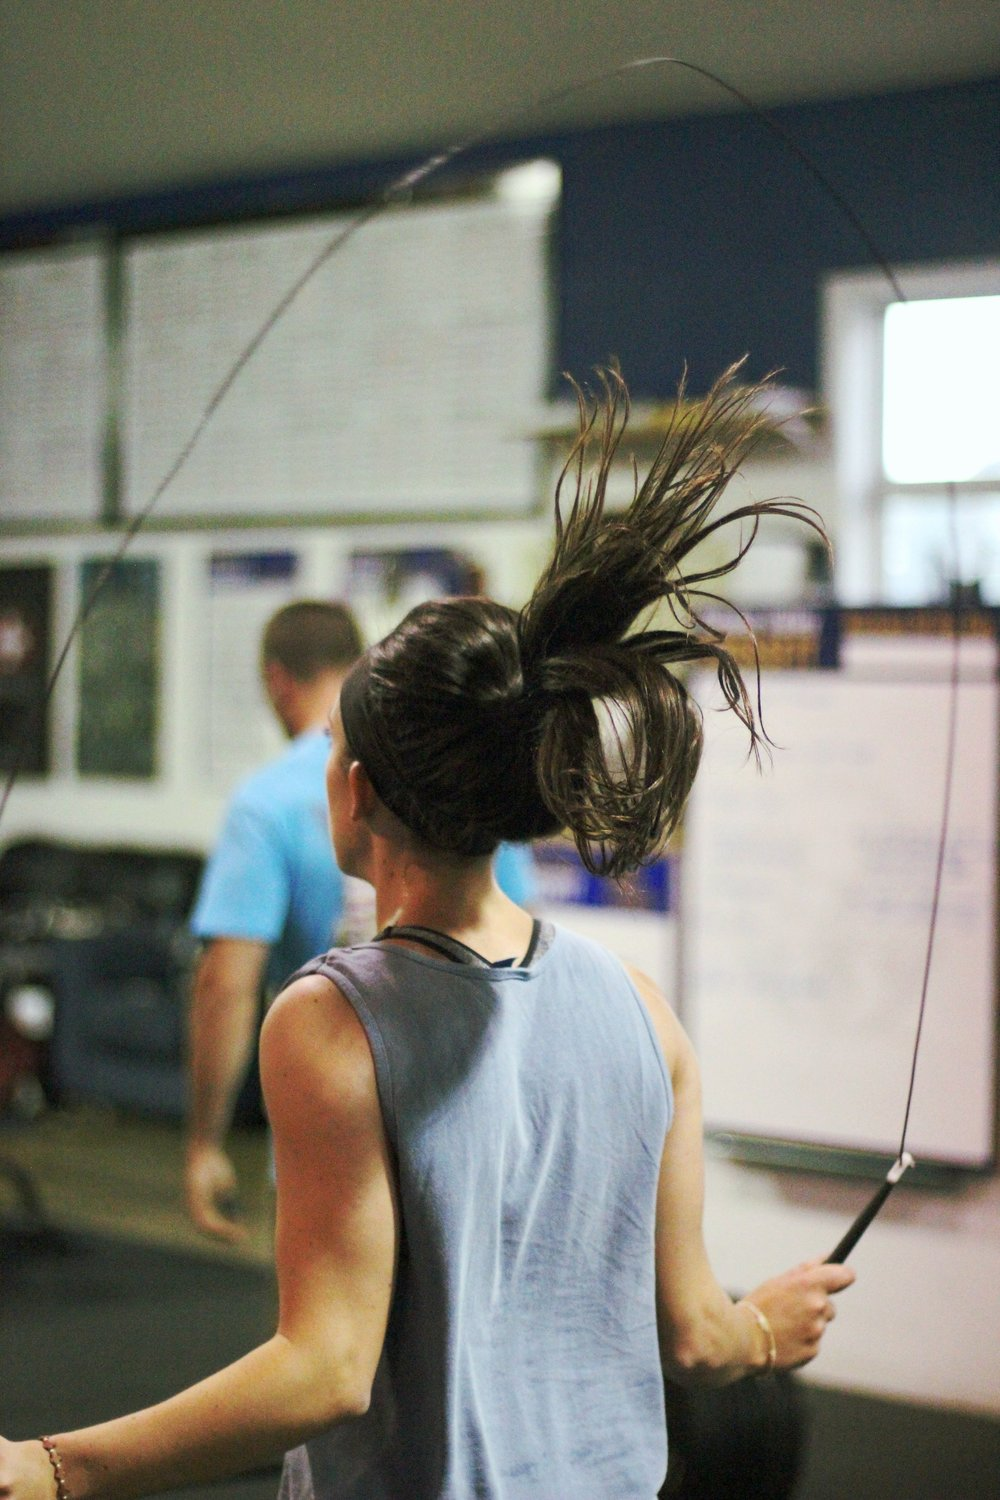 When all the hair is in the air during double unders!